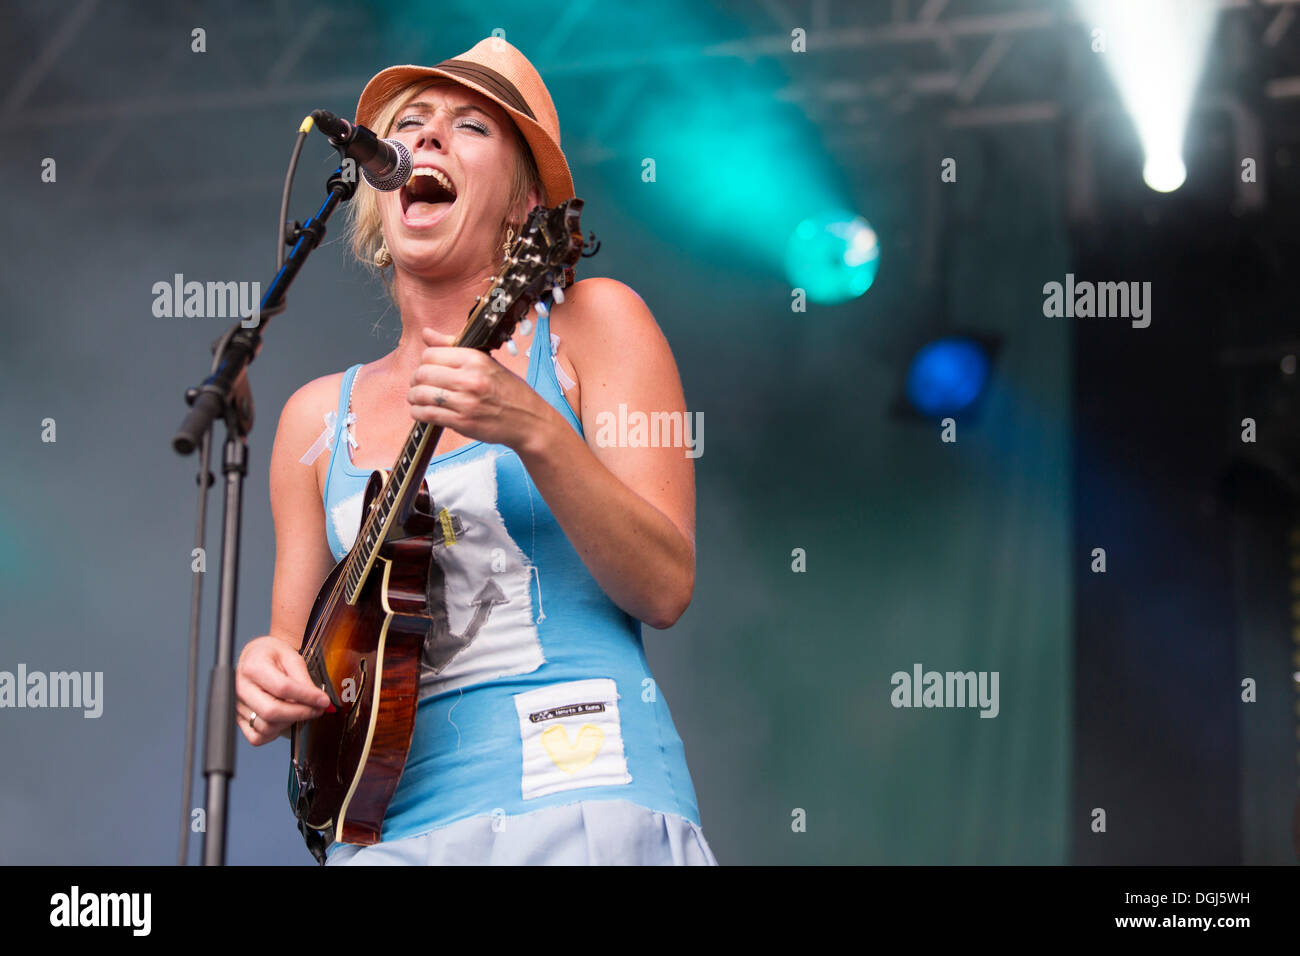 Turid Jørgensen with a mandolin from the Norwegian girl band Katzenjammer performing live at Heitere Open Air in Zofingen - Stock Image